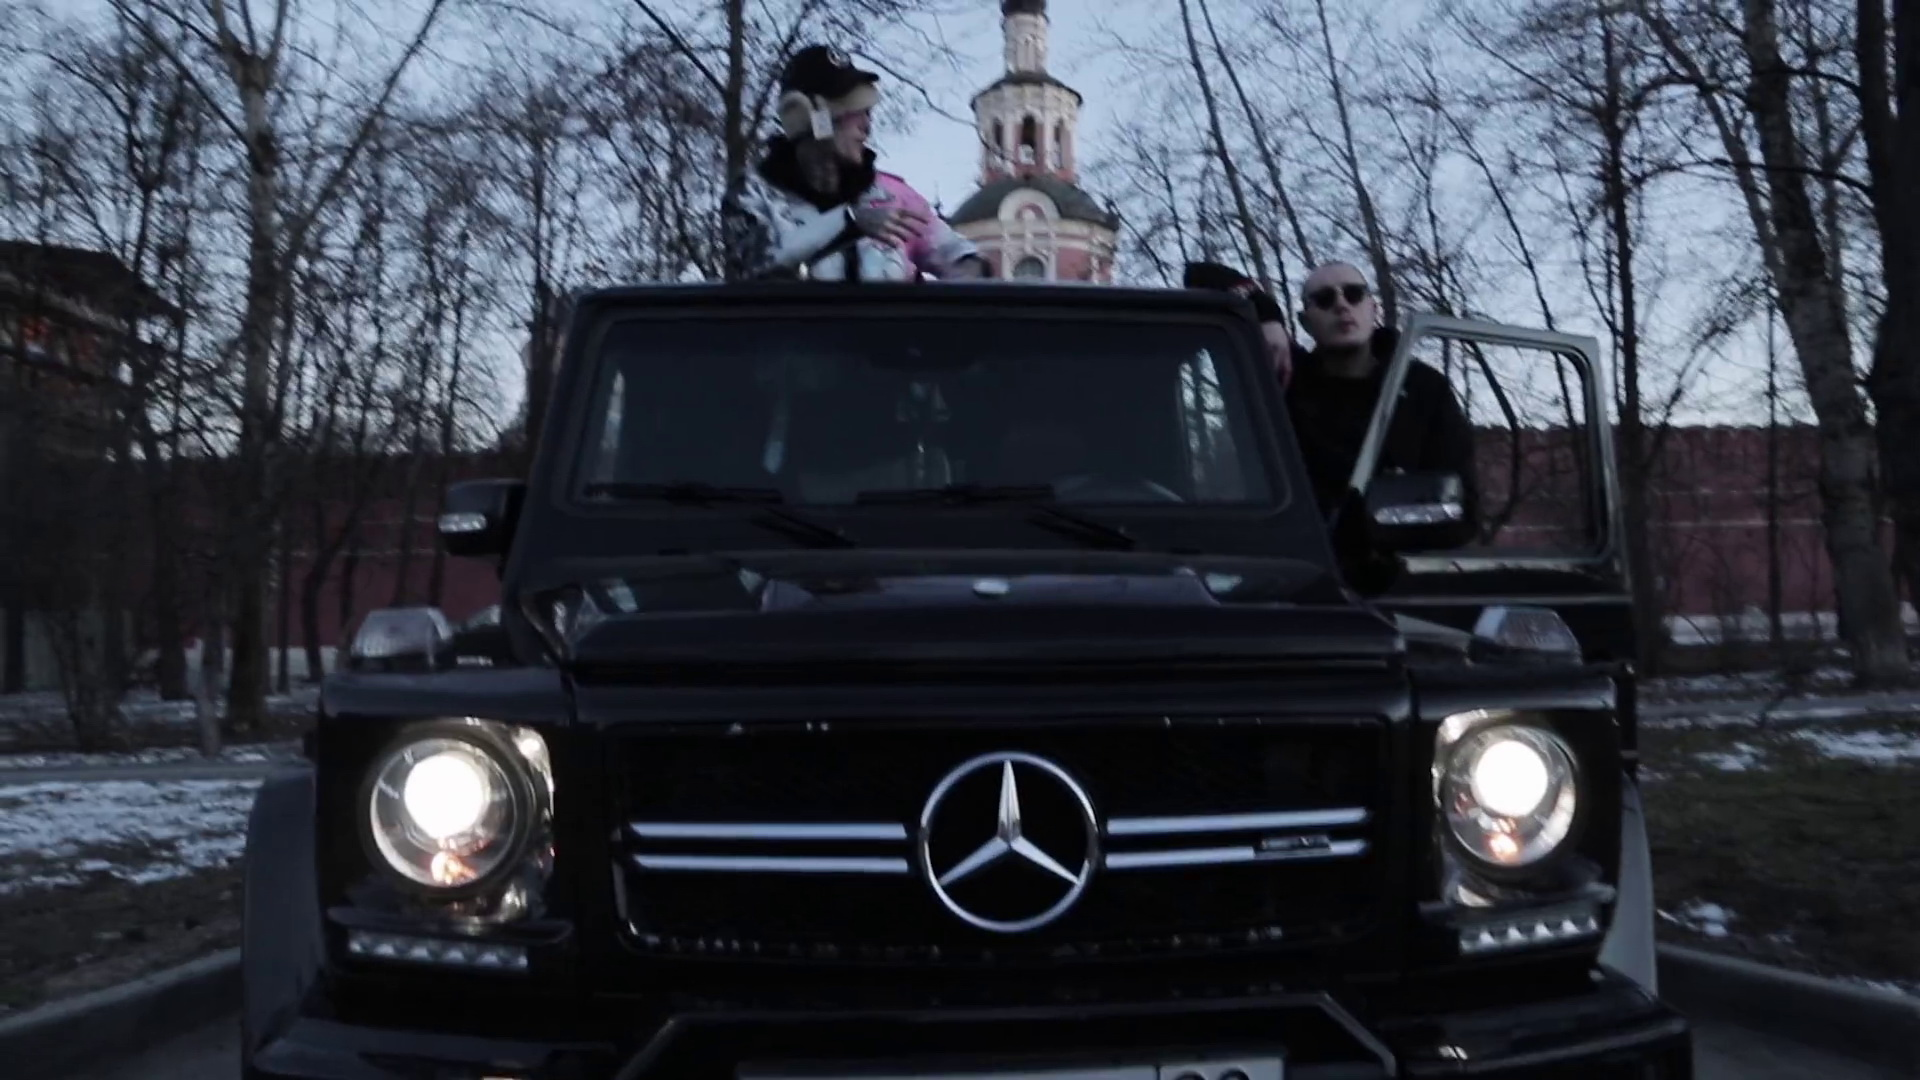 2017 Amg G63 Mercedes Benz >> Mercedes-Benz in Benz Truck by Lil Peep (2017) Official Music Video